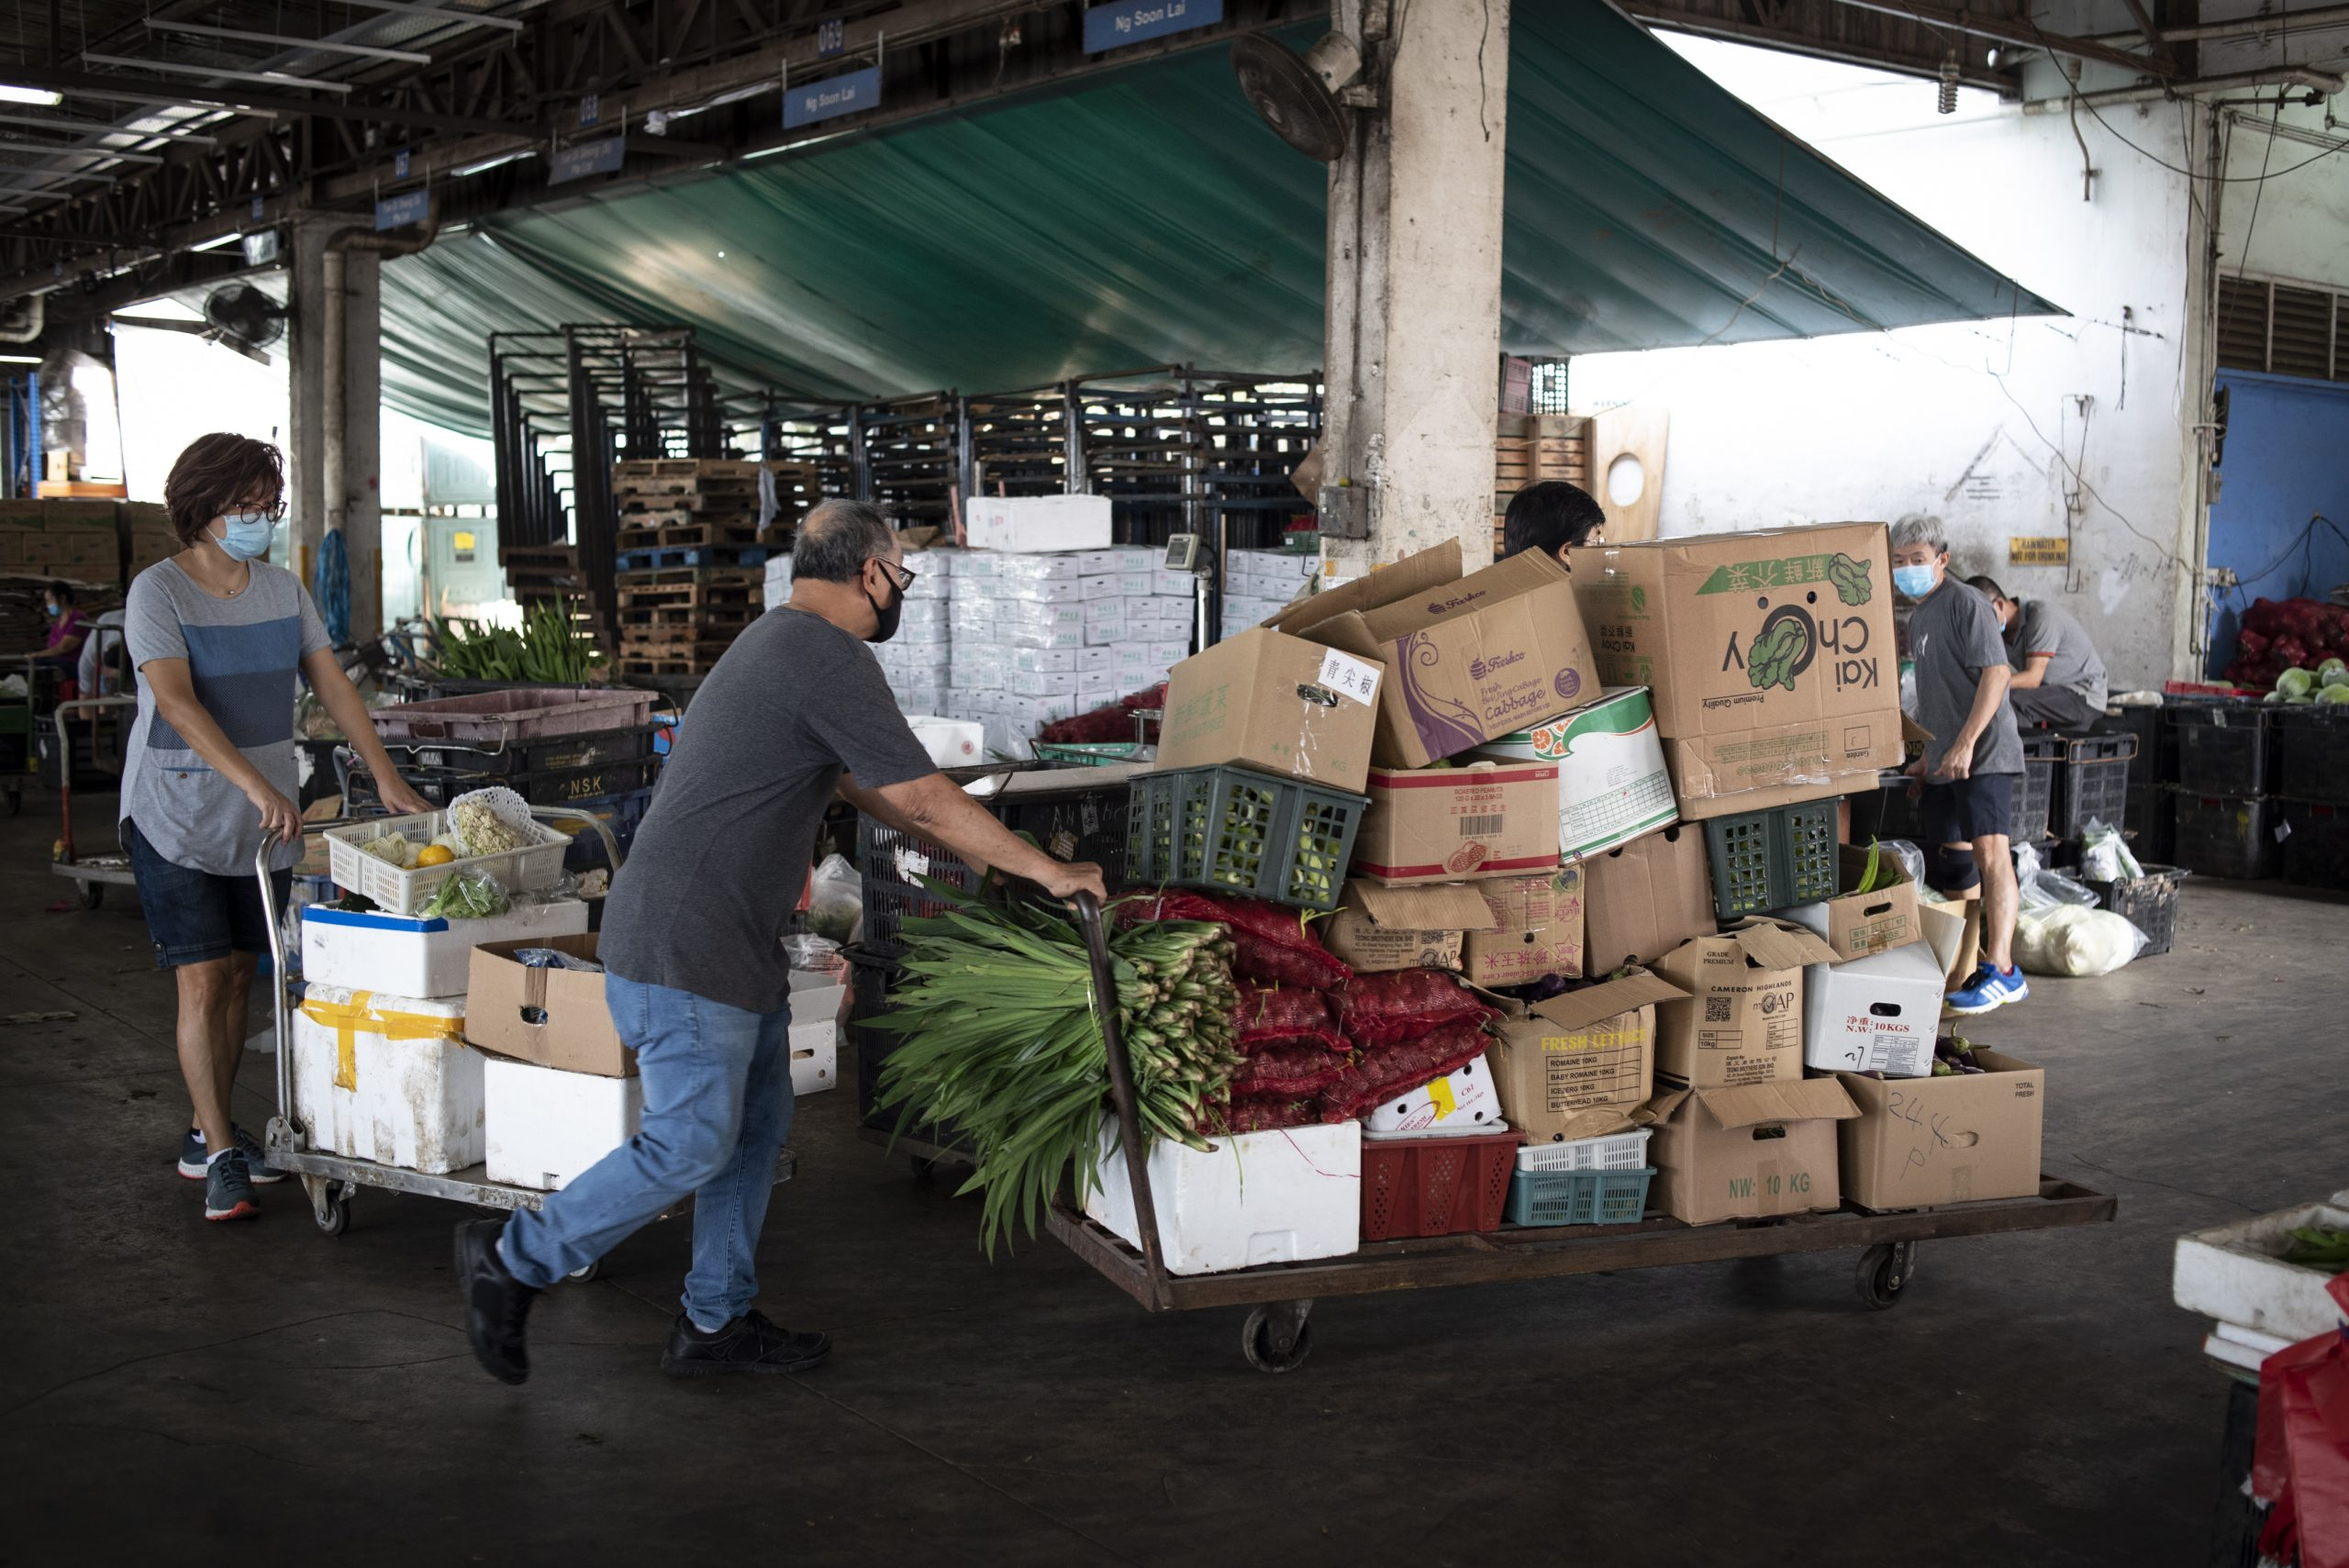 Circling the market mid-morning, volunteers work with fully loaded trolleys to reduce the number of trips back to the loading bay. Vendors there recognise them as a regular weekly fixture, and often have donations piled up and ready for rescue.